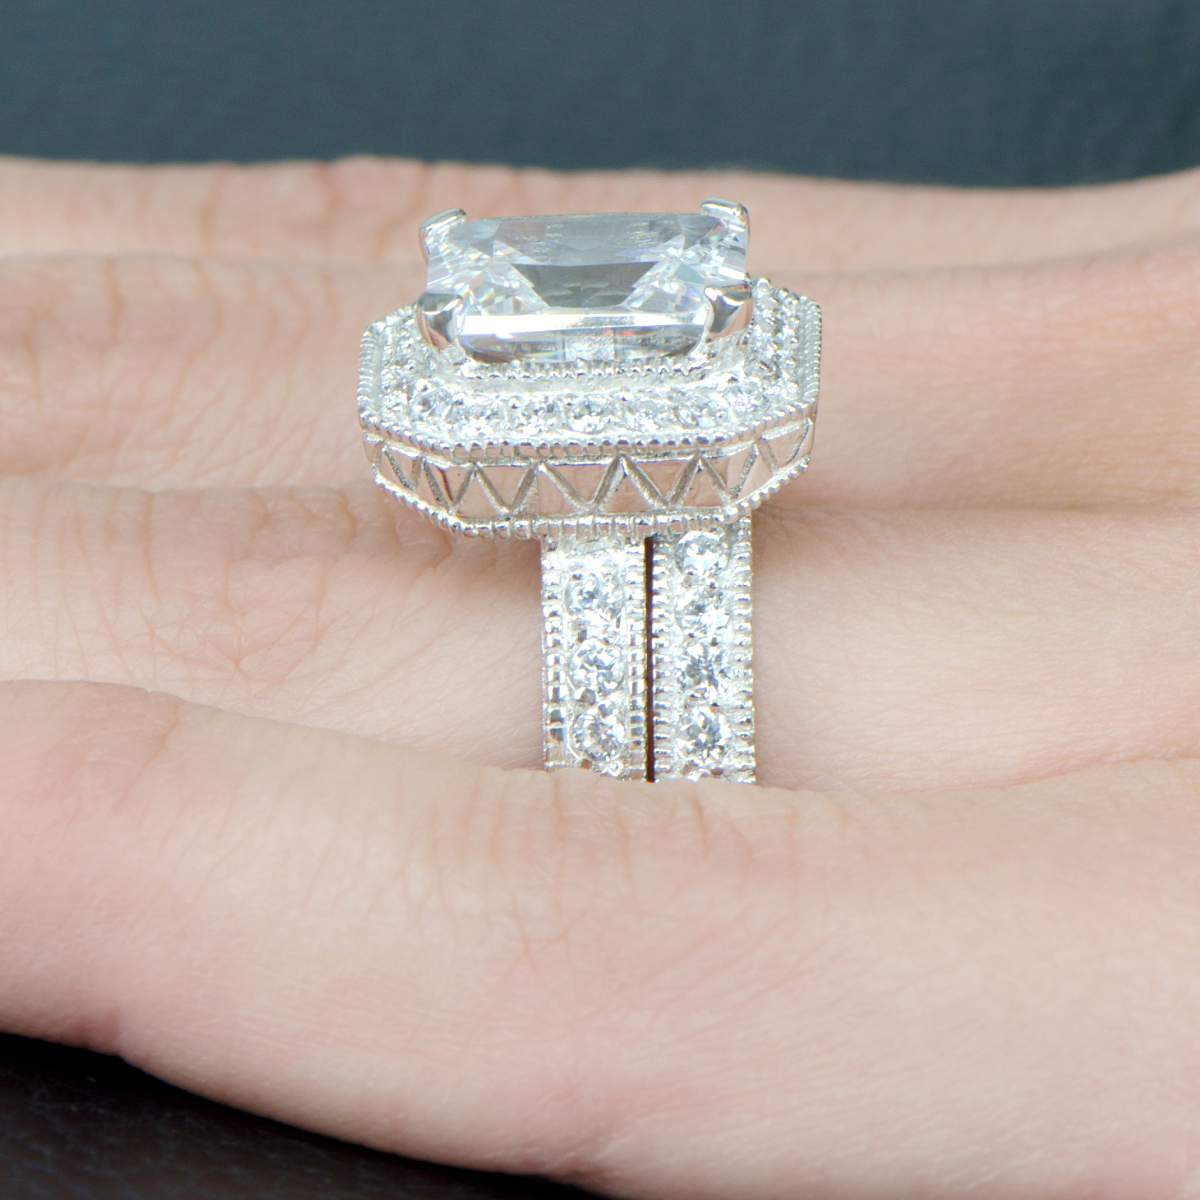 Karianne's Vintage Halo Emerald Cut Cz Wedding Ring Set